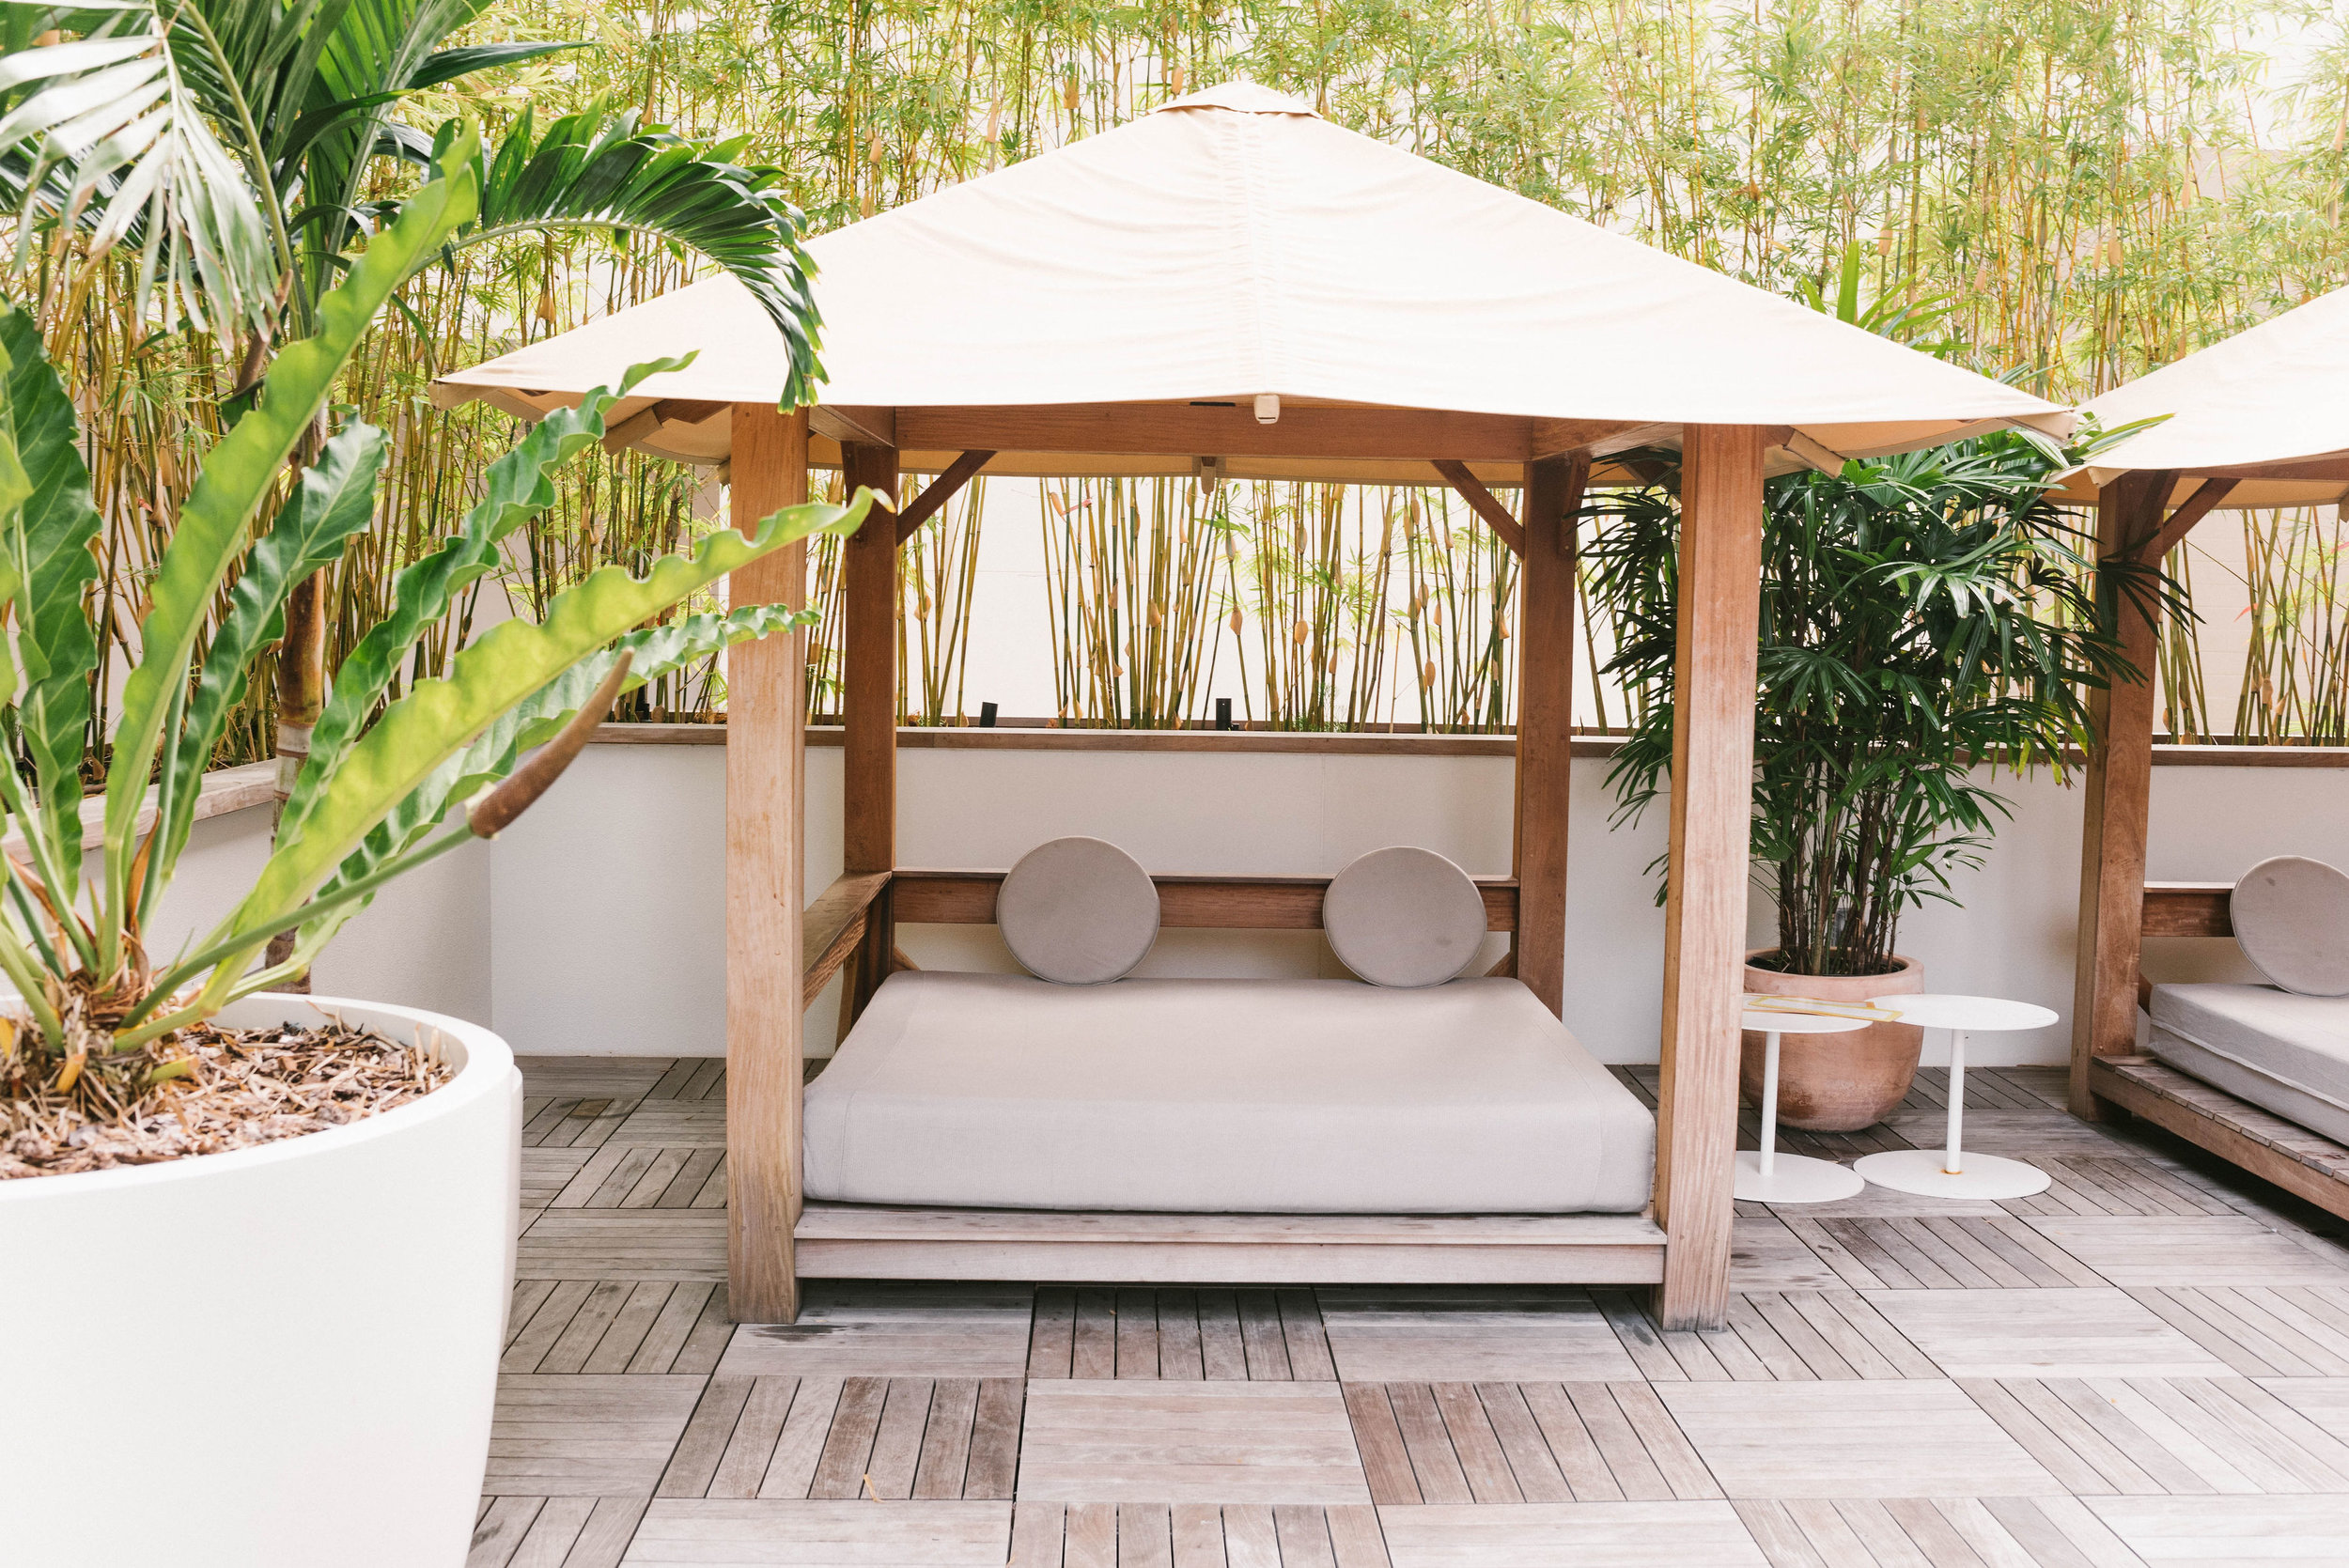 Where to Stay on Oahu, Hawaii | The Laylow Hotel